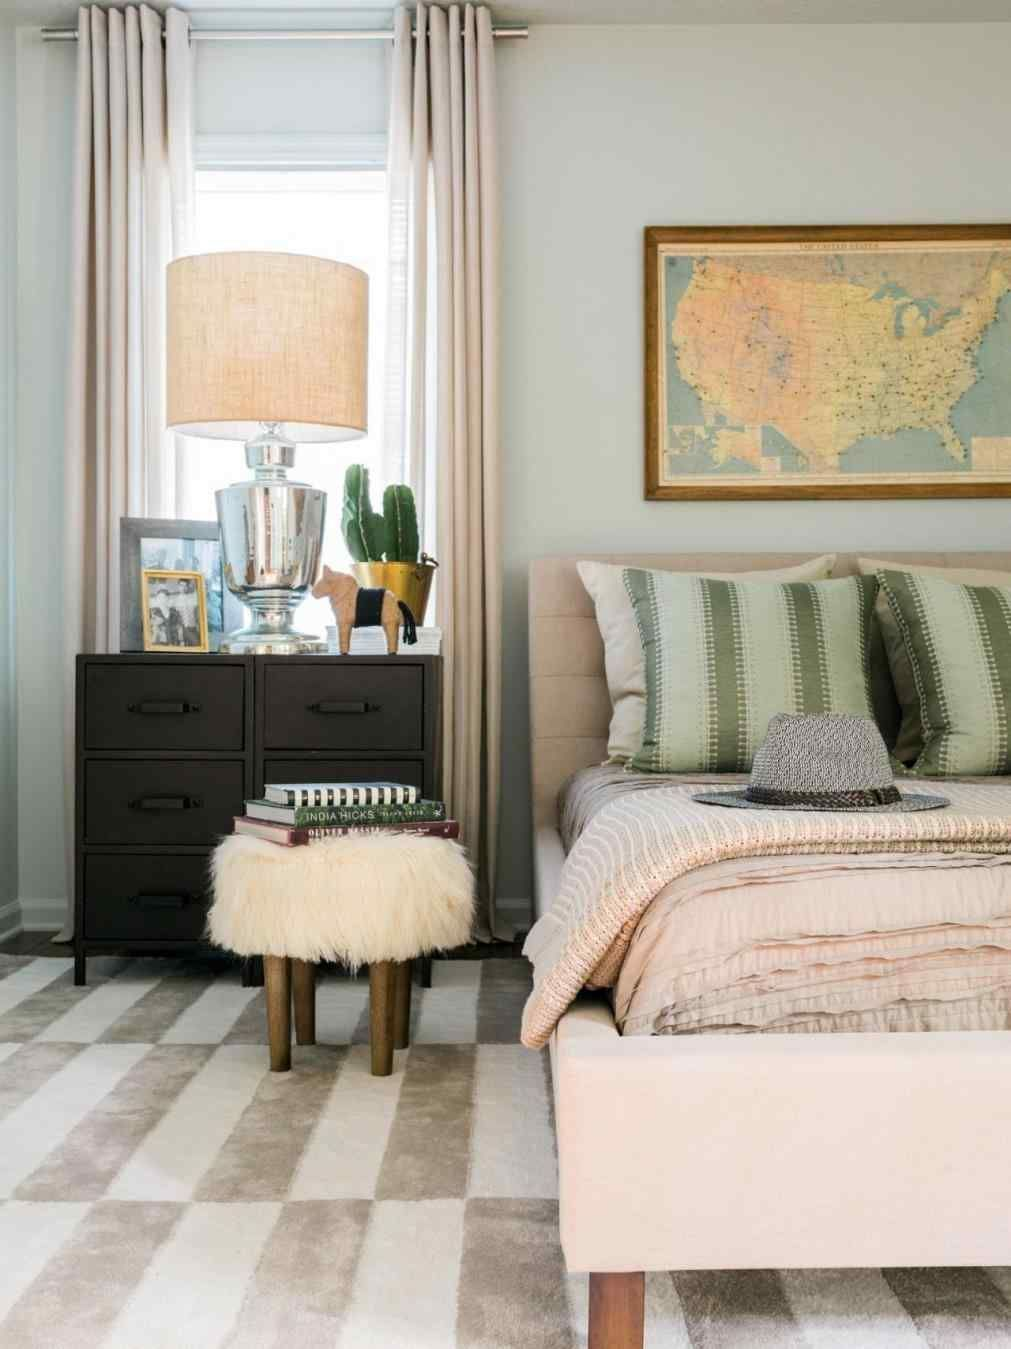 17 Nice Bedroom Paint Colors For Prepare New Year In 2019 Decorate Your Bedroom With The Idea Small Bedroom Colours Bedroom Color Schemes Small Room Bedroom